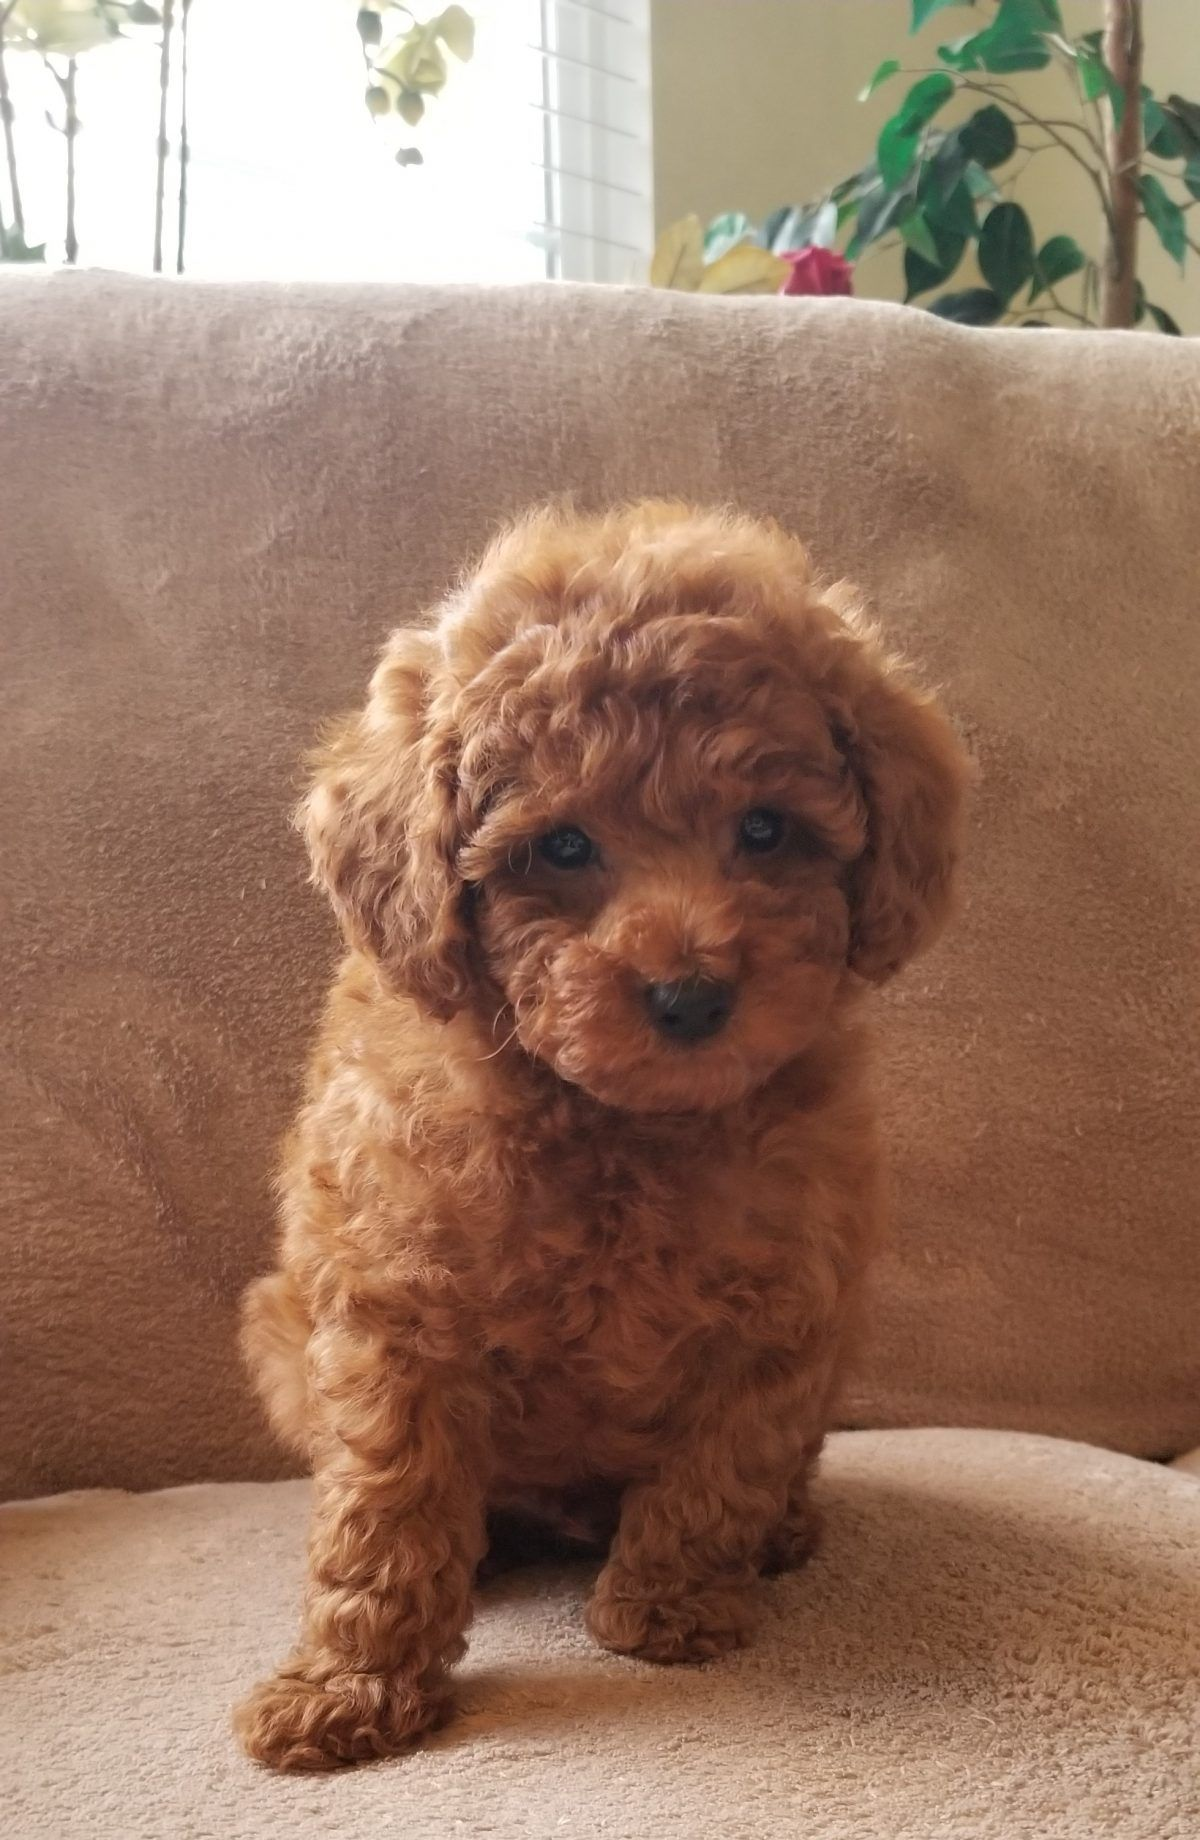 Tiger Male Akc Poodle Puppy For Sale In Oxnard California Meet Tiger A Stunning Poodle Puppy Who S Poodle Puppies For Sale Puppies For Sale Poodle Puppy